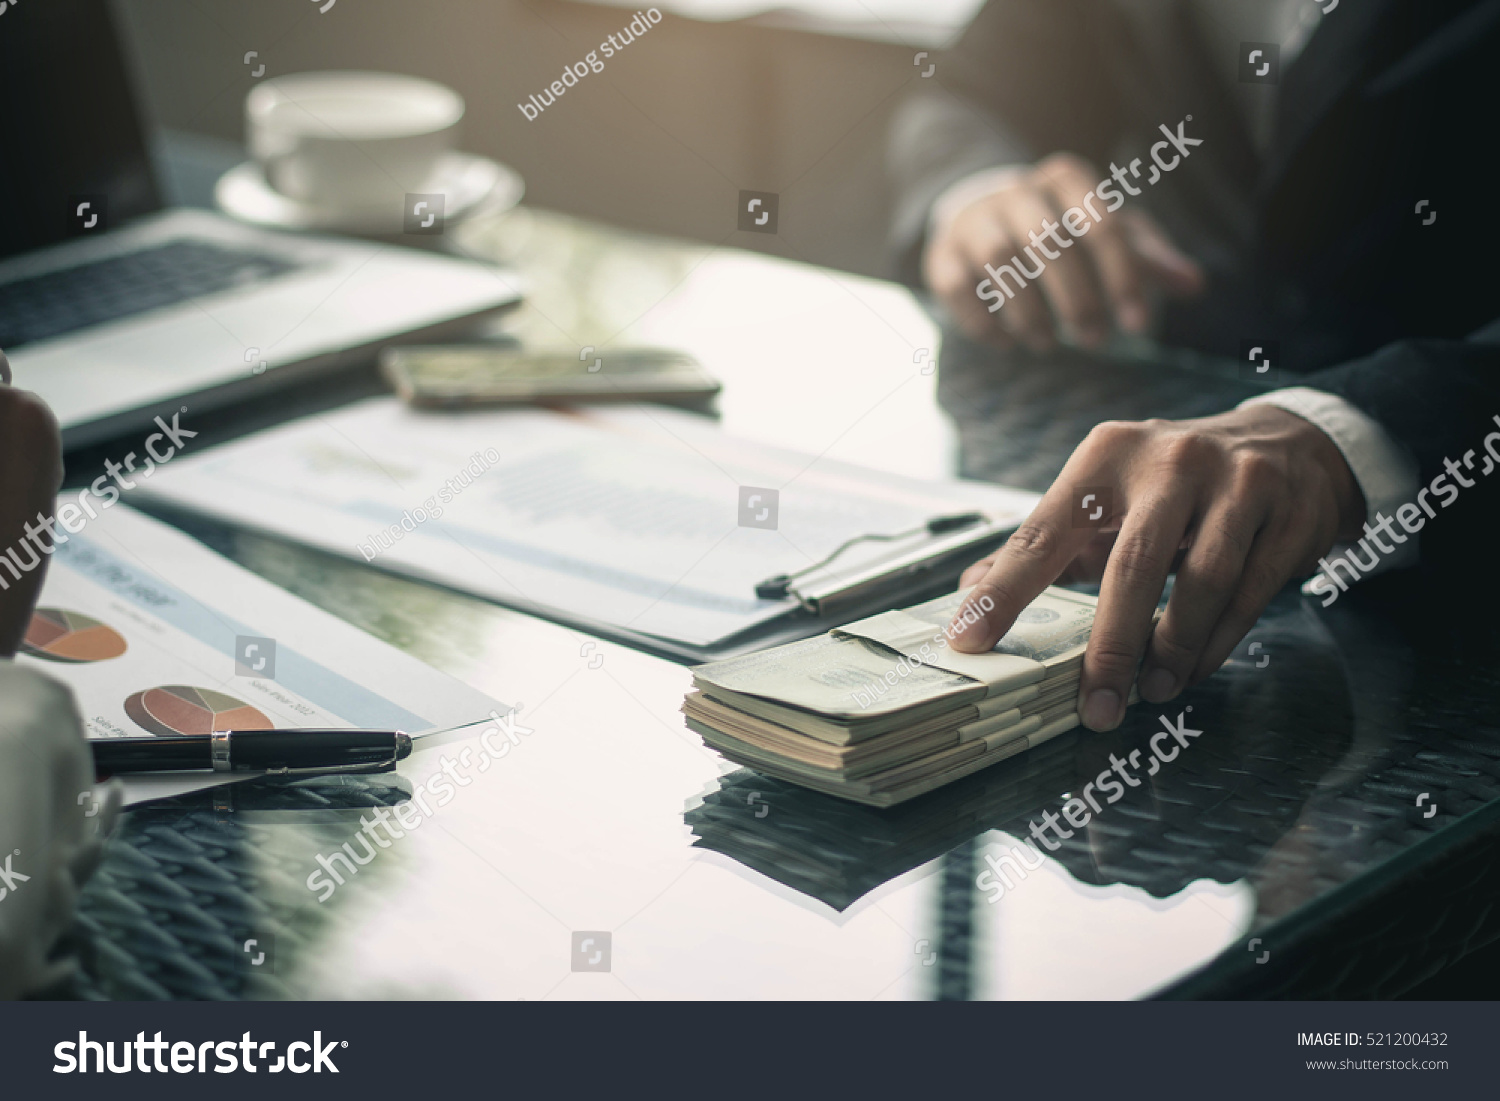 Man offering batch of hundred dollar bills. Hands close up. Venality, bribe, corruption concept. Hand giving money - United States Dollars (or USD). Hand receiving money from businessman. #521200432